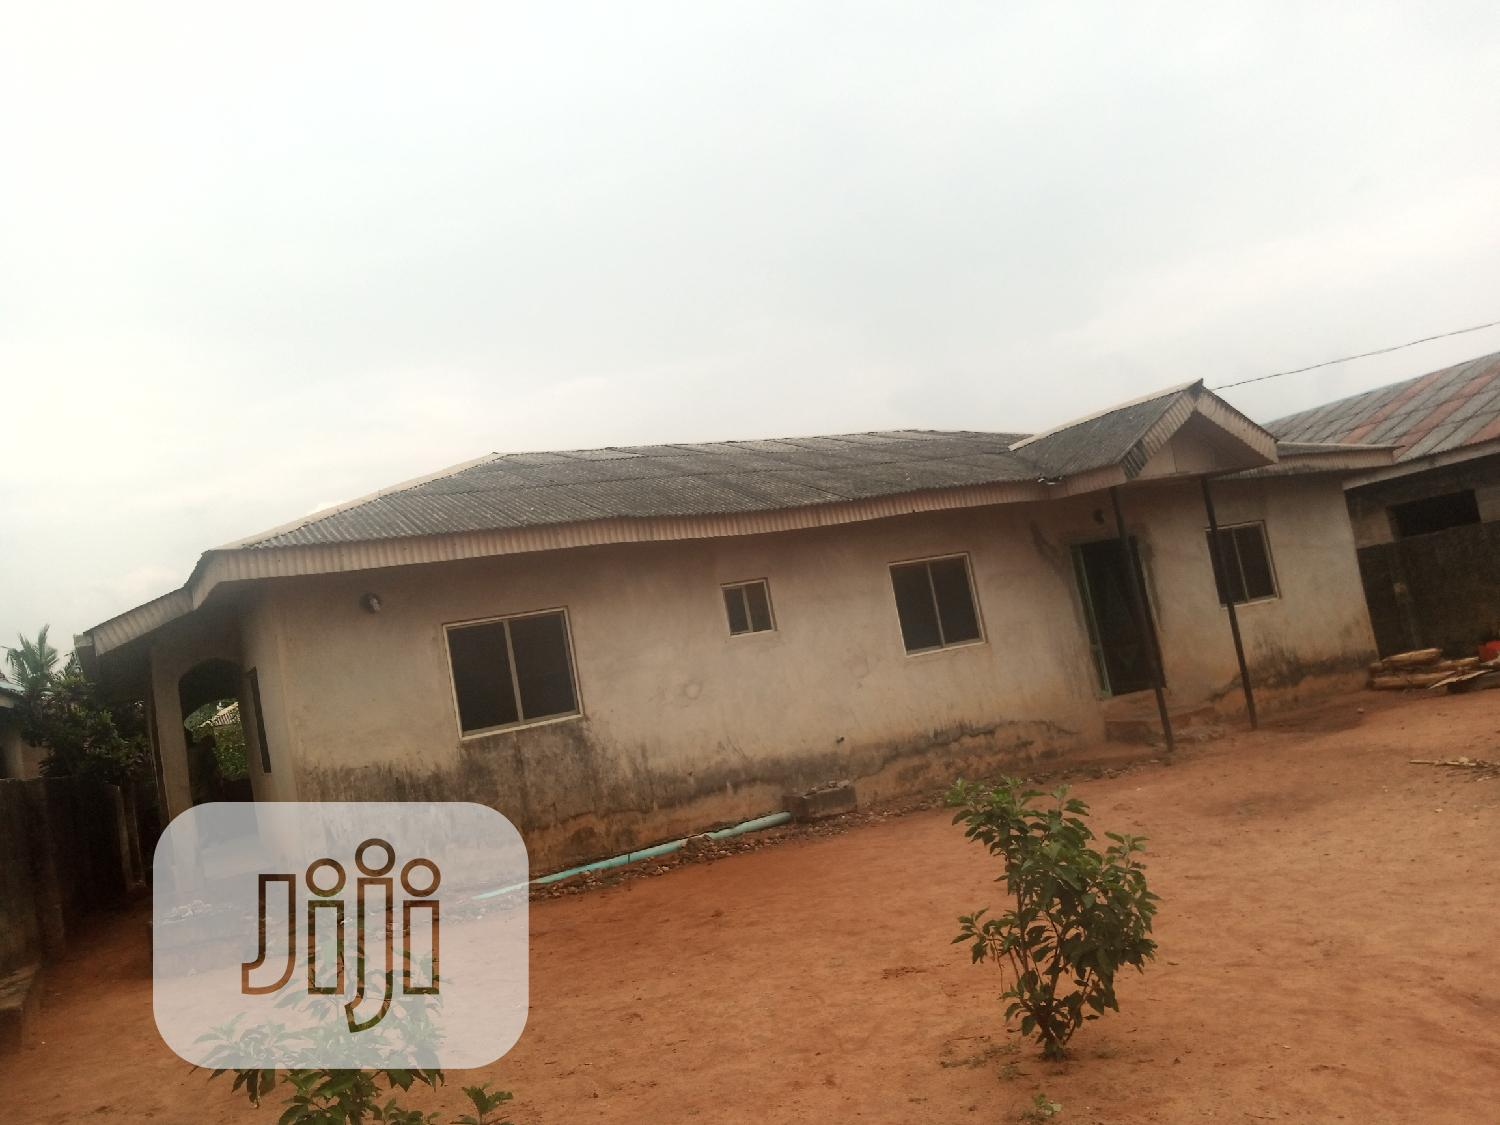 4 Bedroom Bungalow With A Shop On A Plot At Ayobo For Sale   Houses & Apartments For Sale for sale in Ayobo, Ipaja, Nigeria